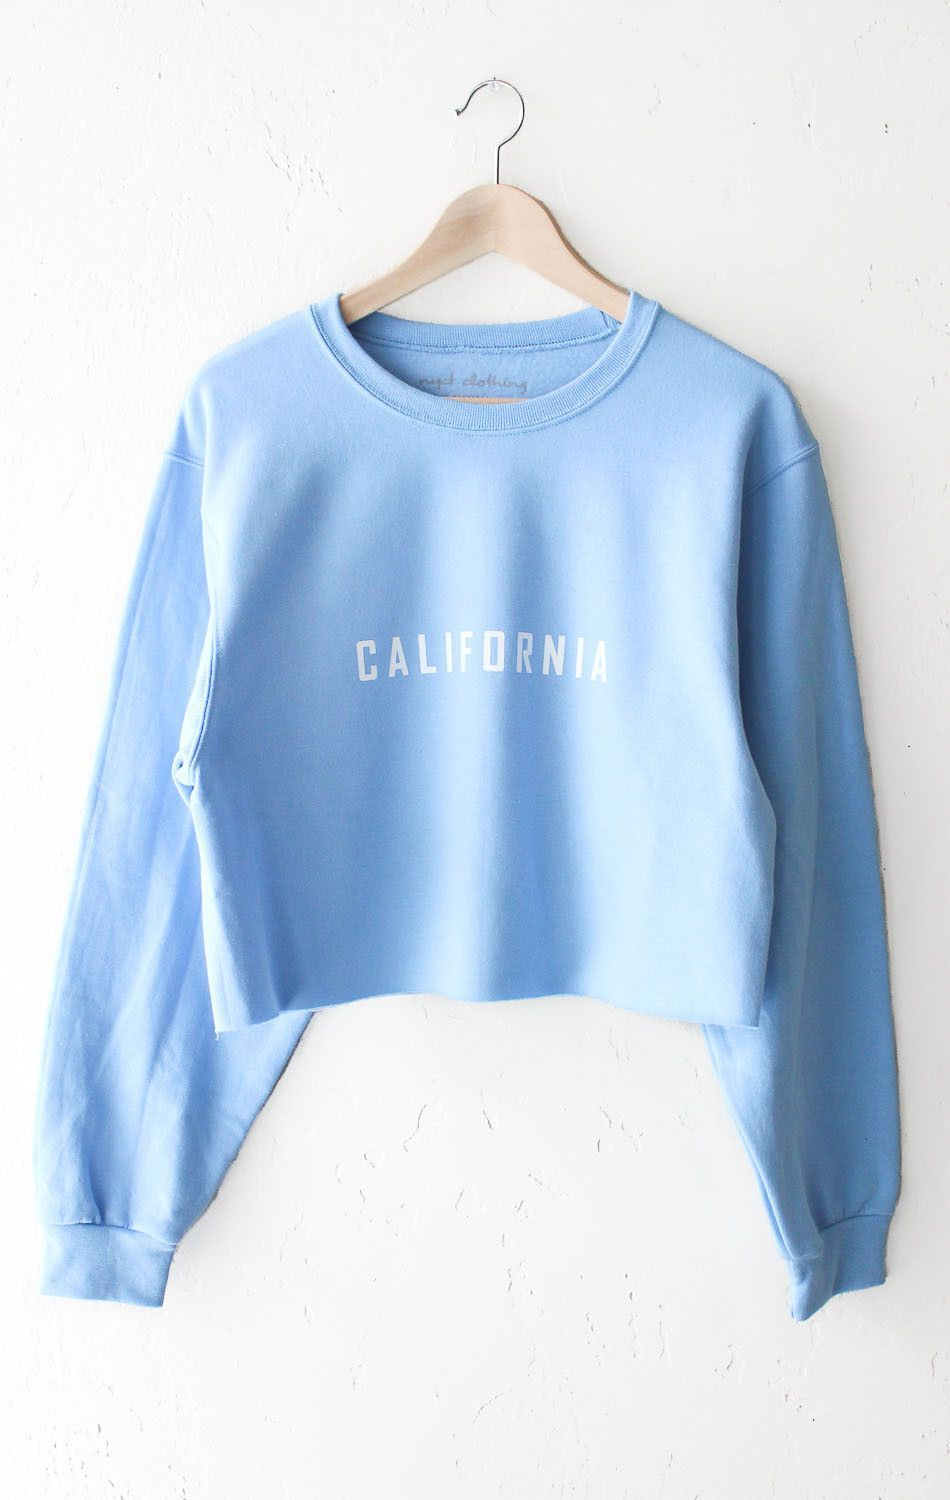 California Oversized Cropped Sweatshirt | Unisex, Clothing and Lights